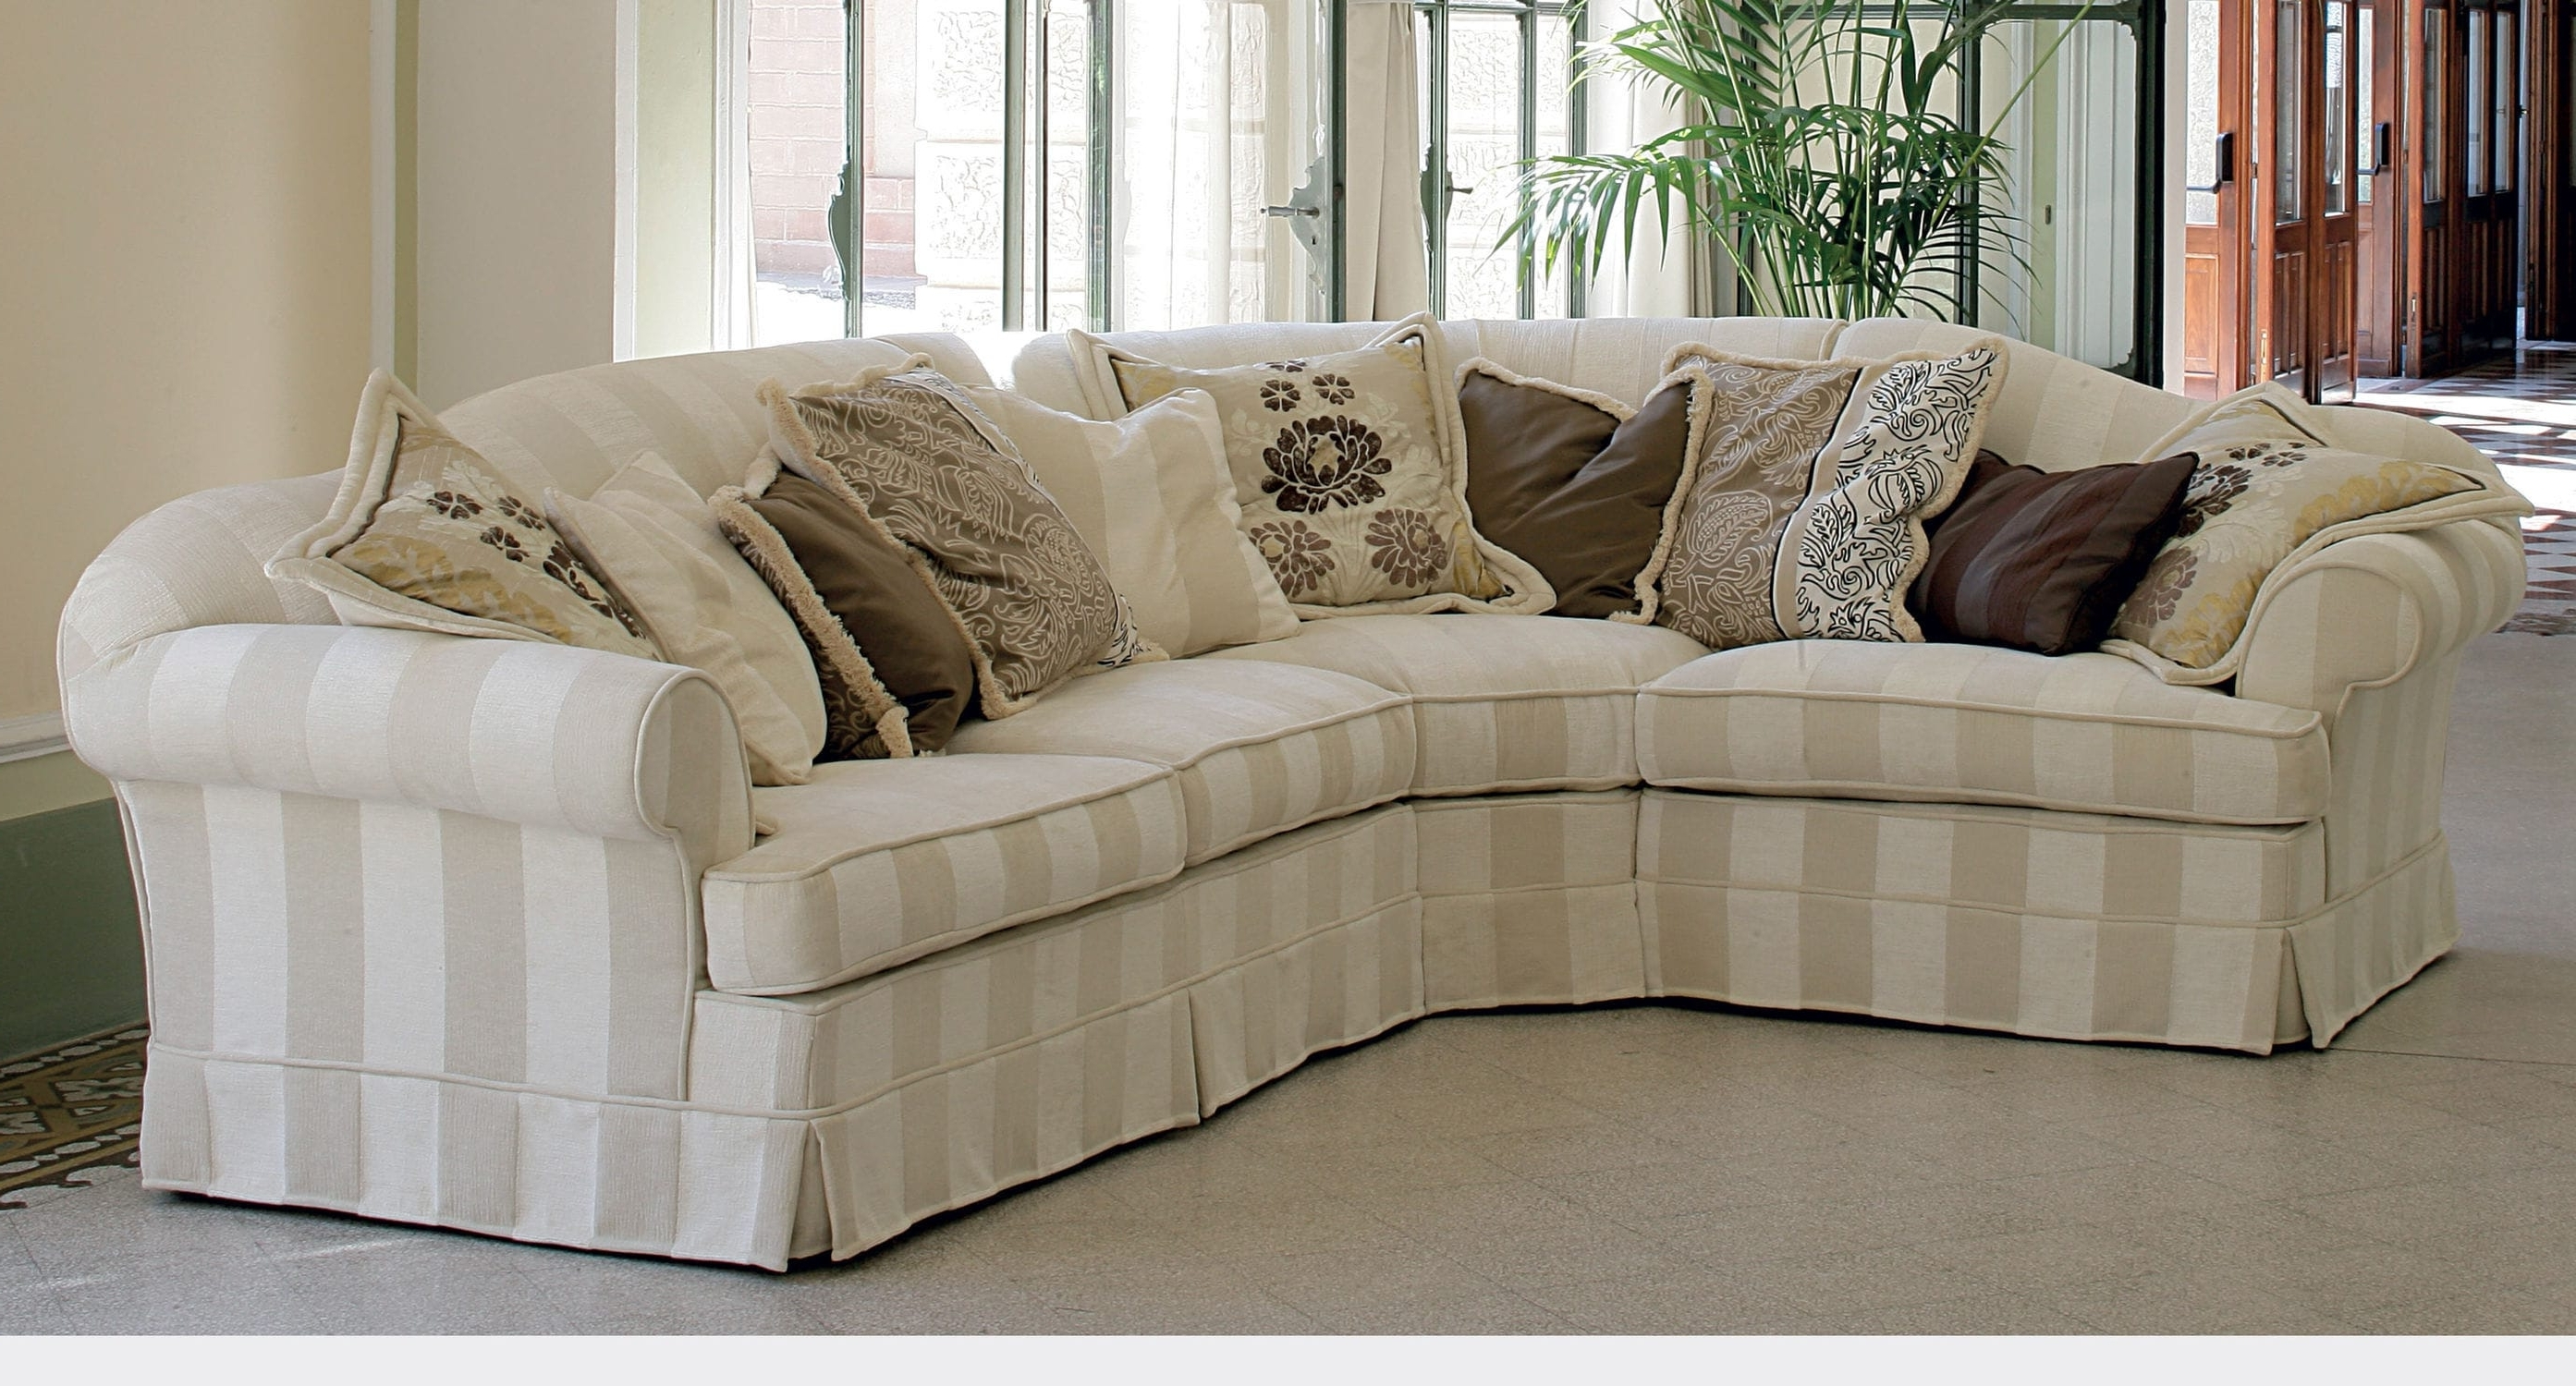 Favorite Cheap Corner Sofas Fabric Fancy Home Design For Sofas With Removable Cover (View 4 of 20)